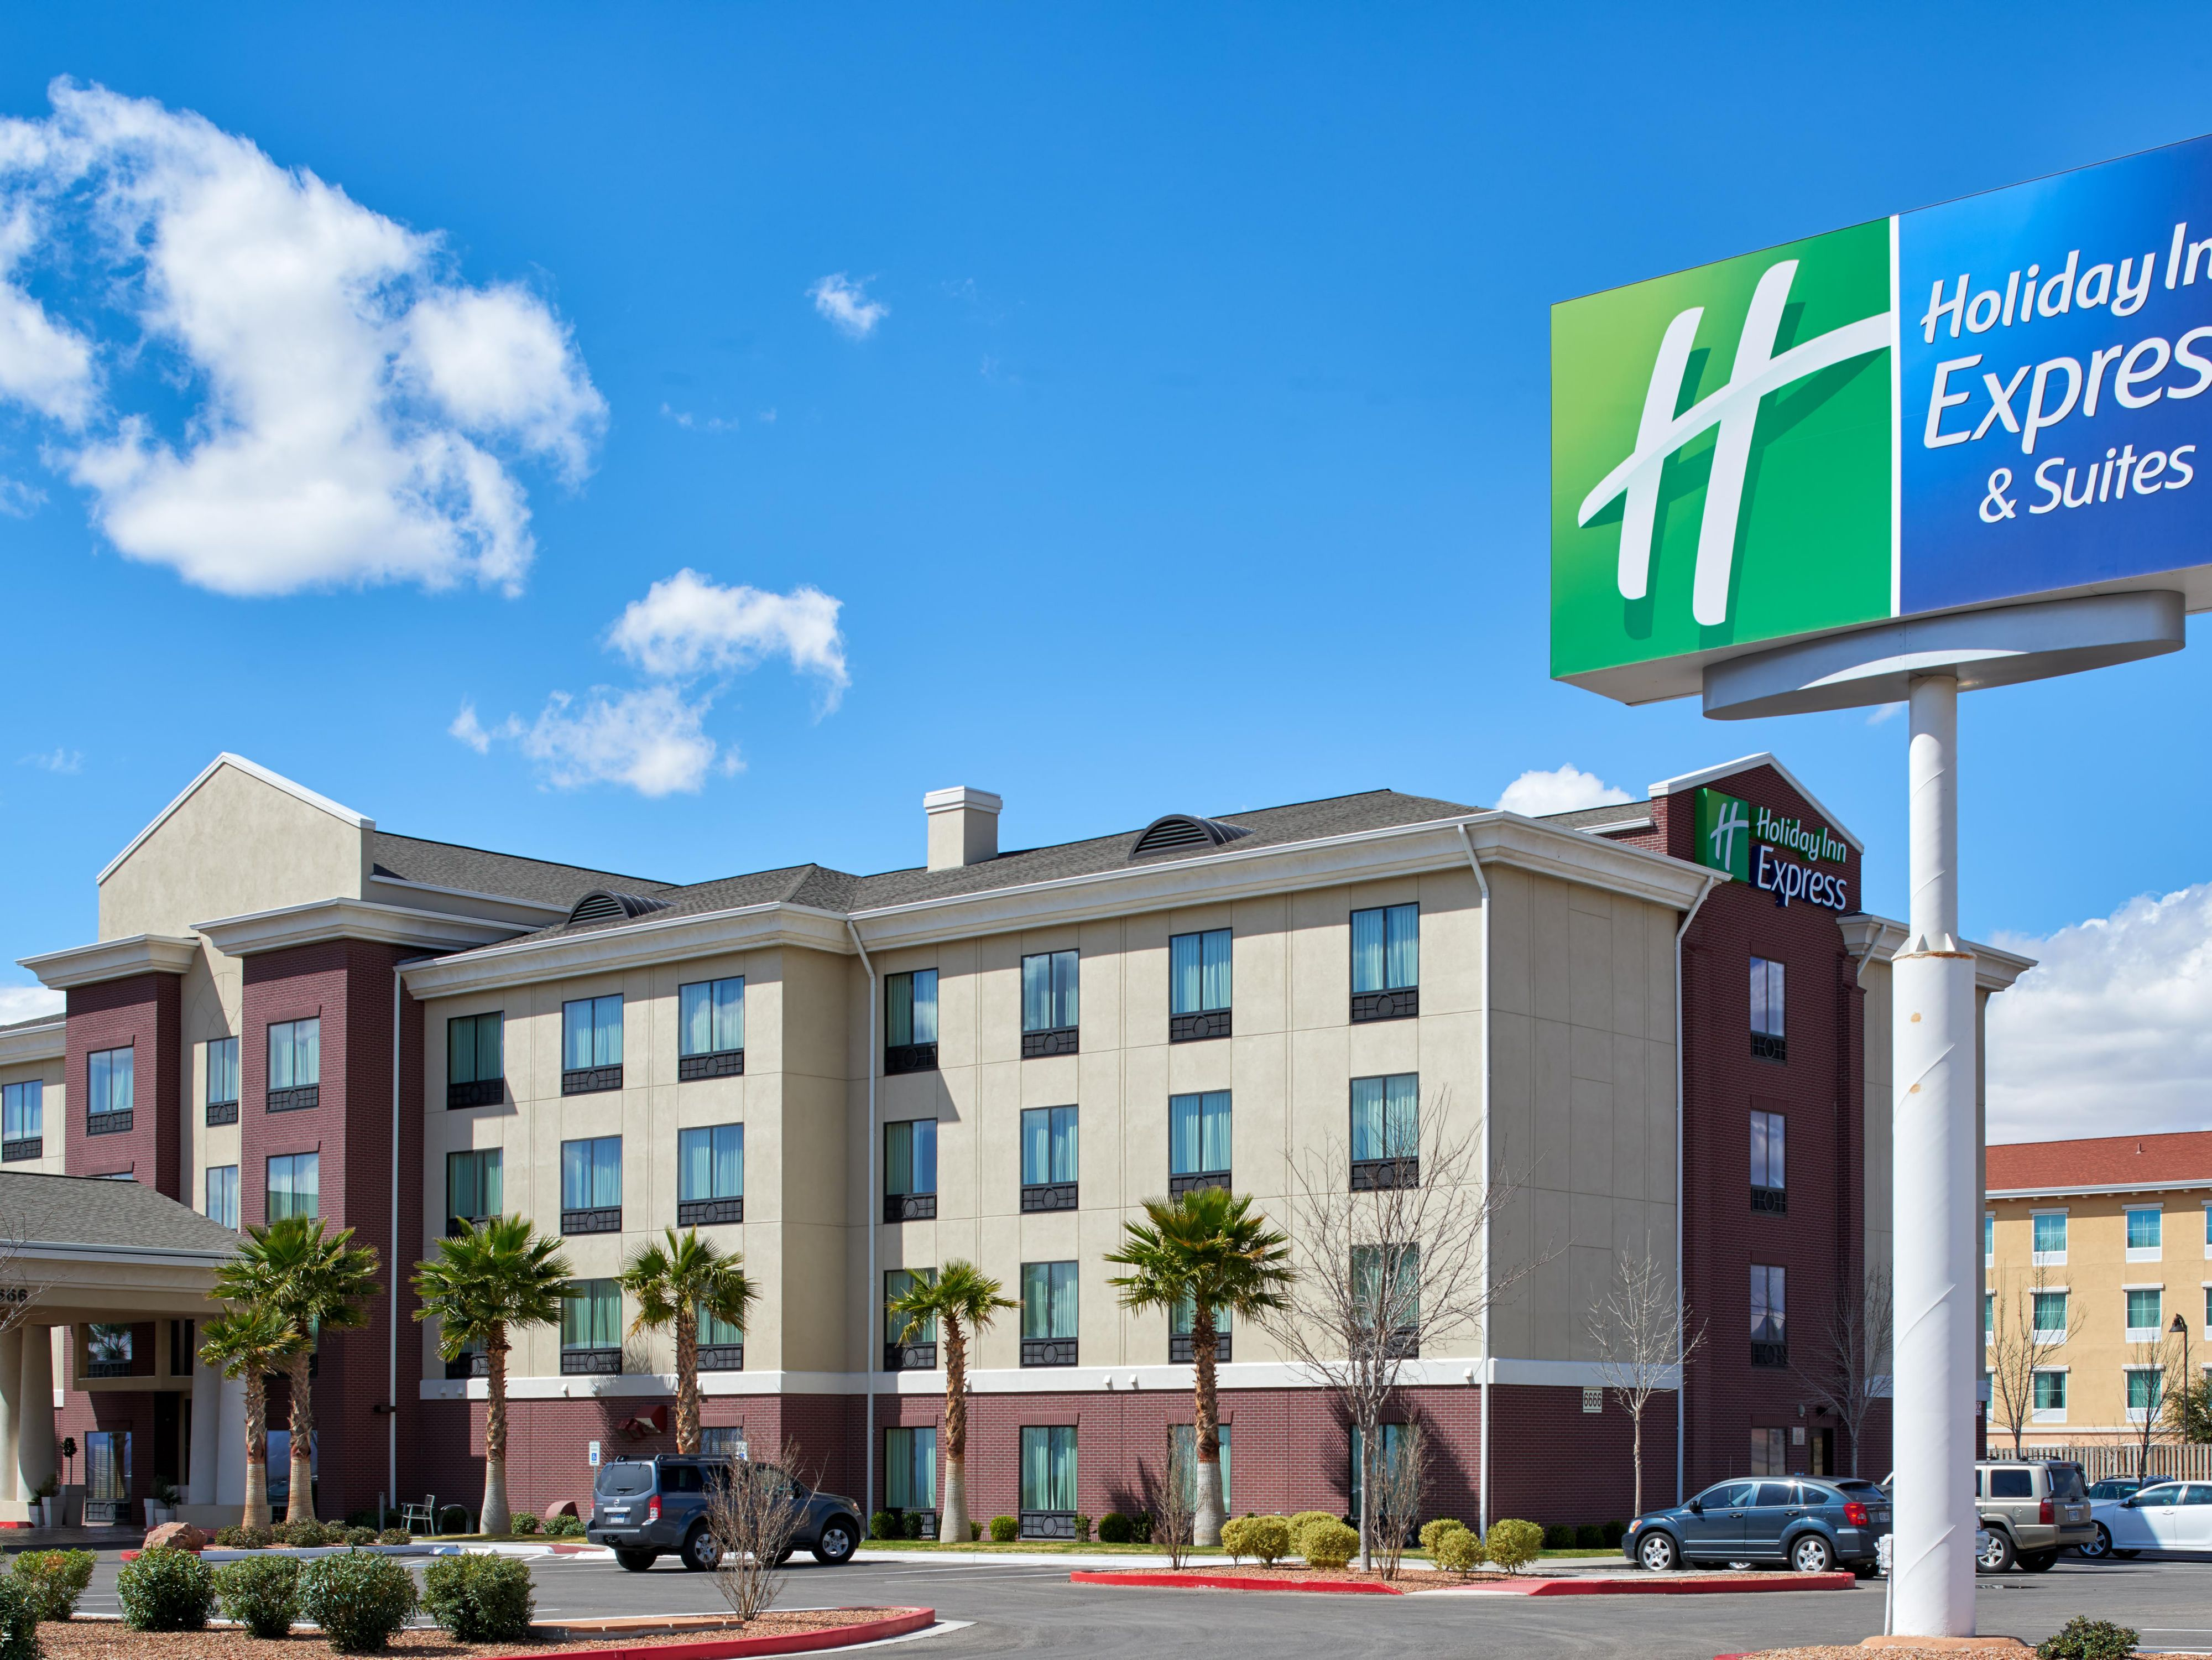 Holiday Inn Express Suites El Paso Airport